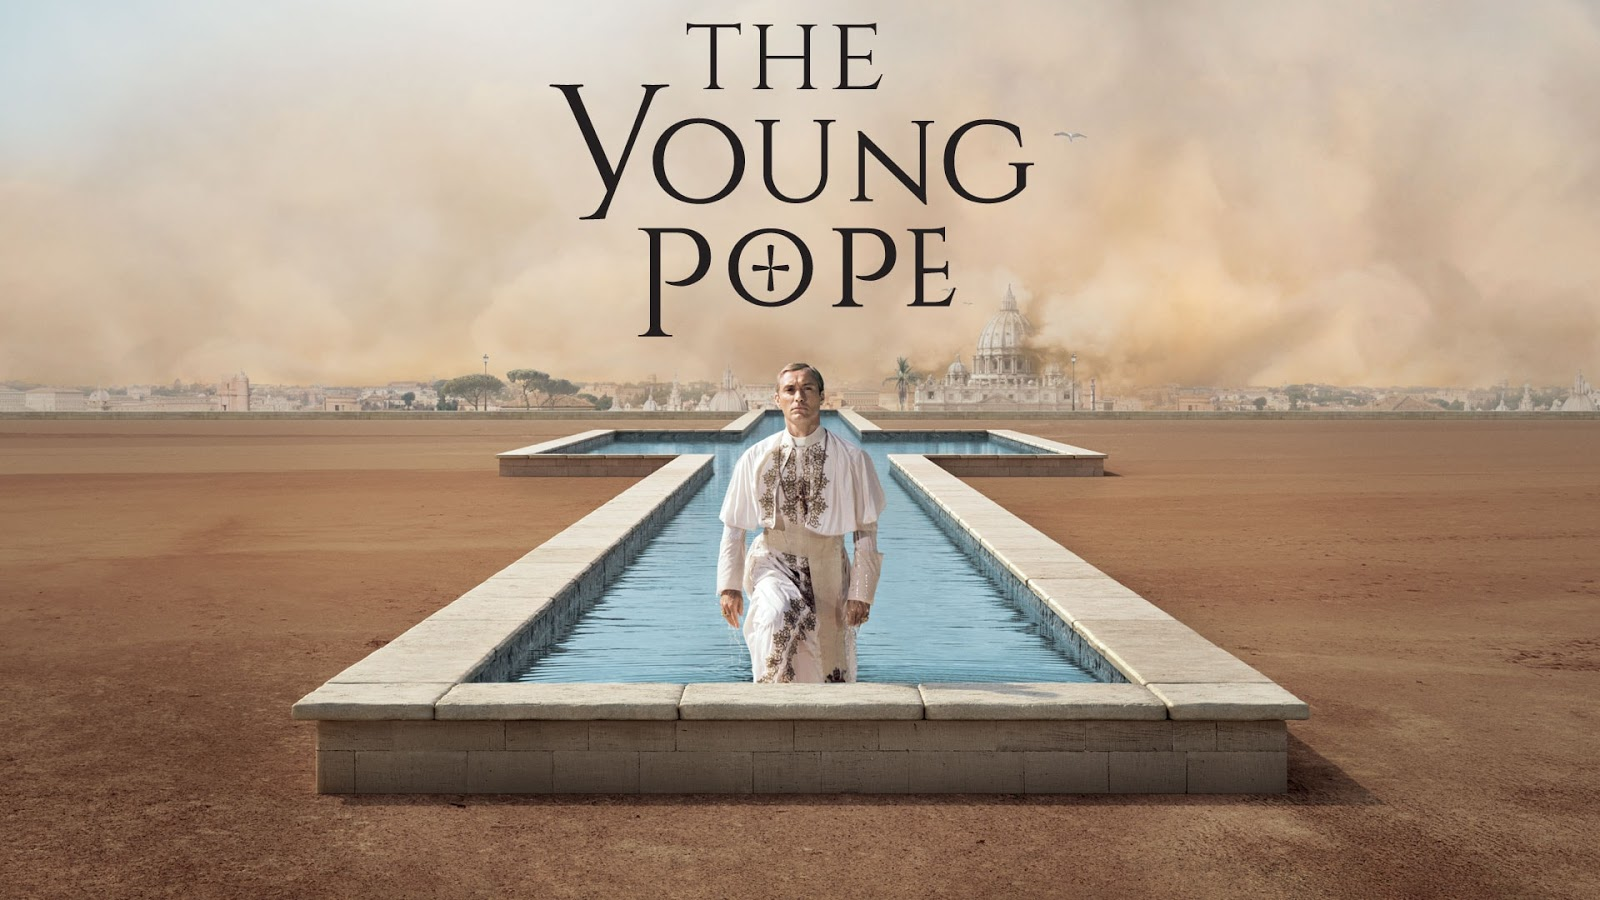 Póster de The Young Pope